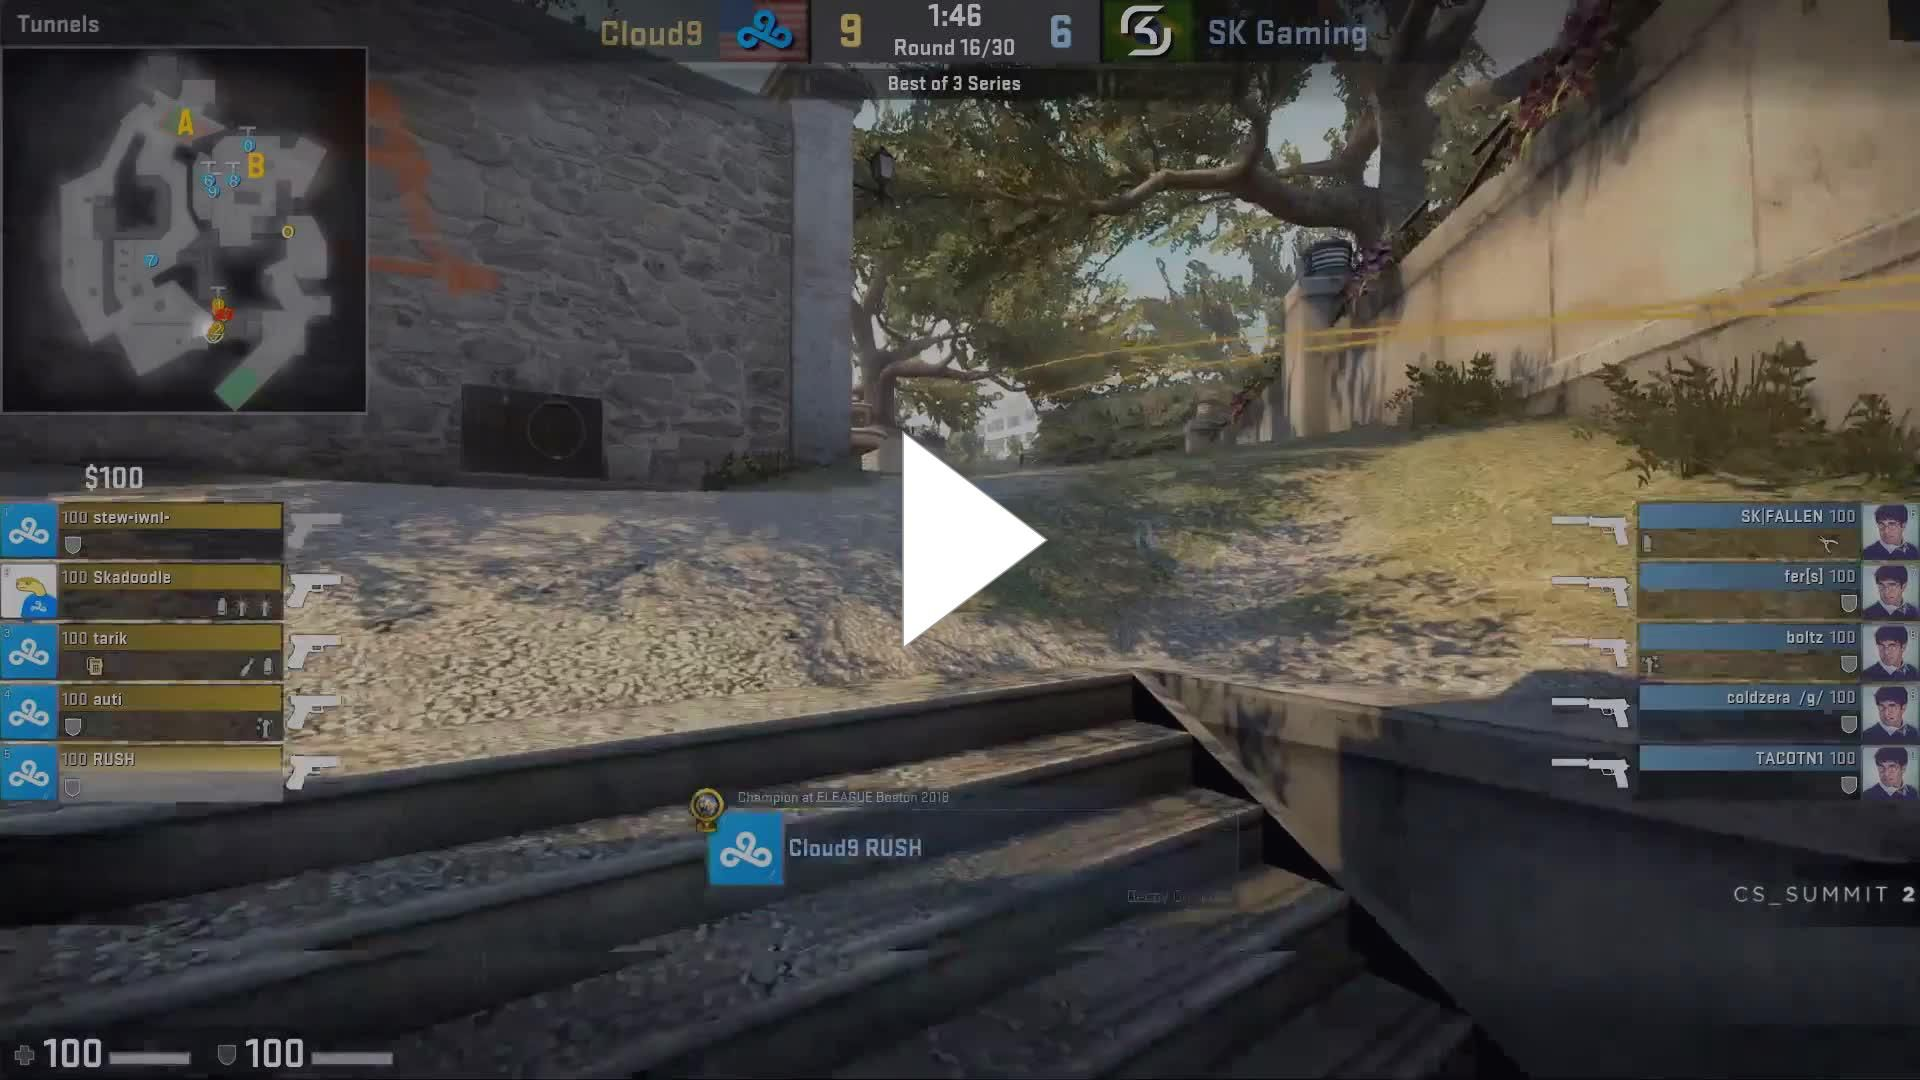 fer stuck on decoy? #games #globaloffensive #CSGO